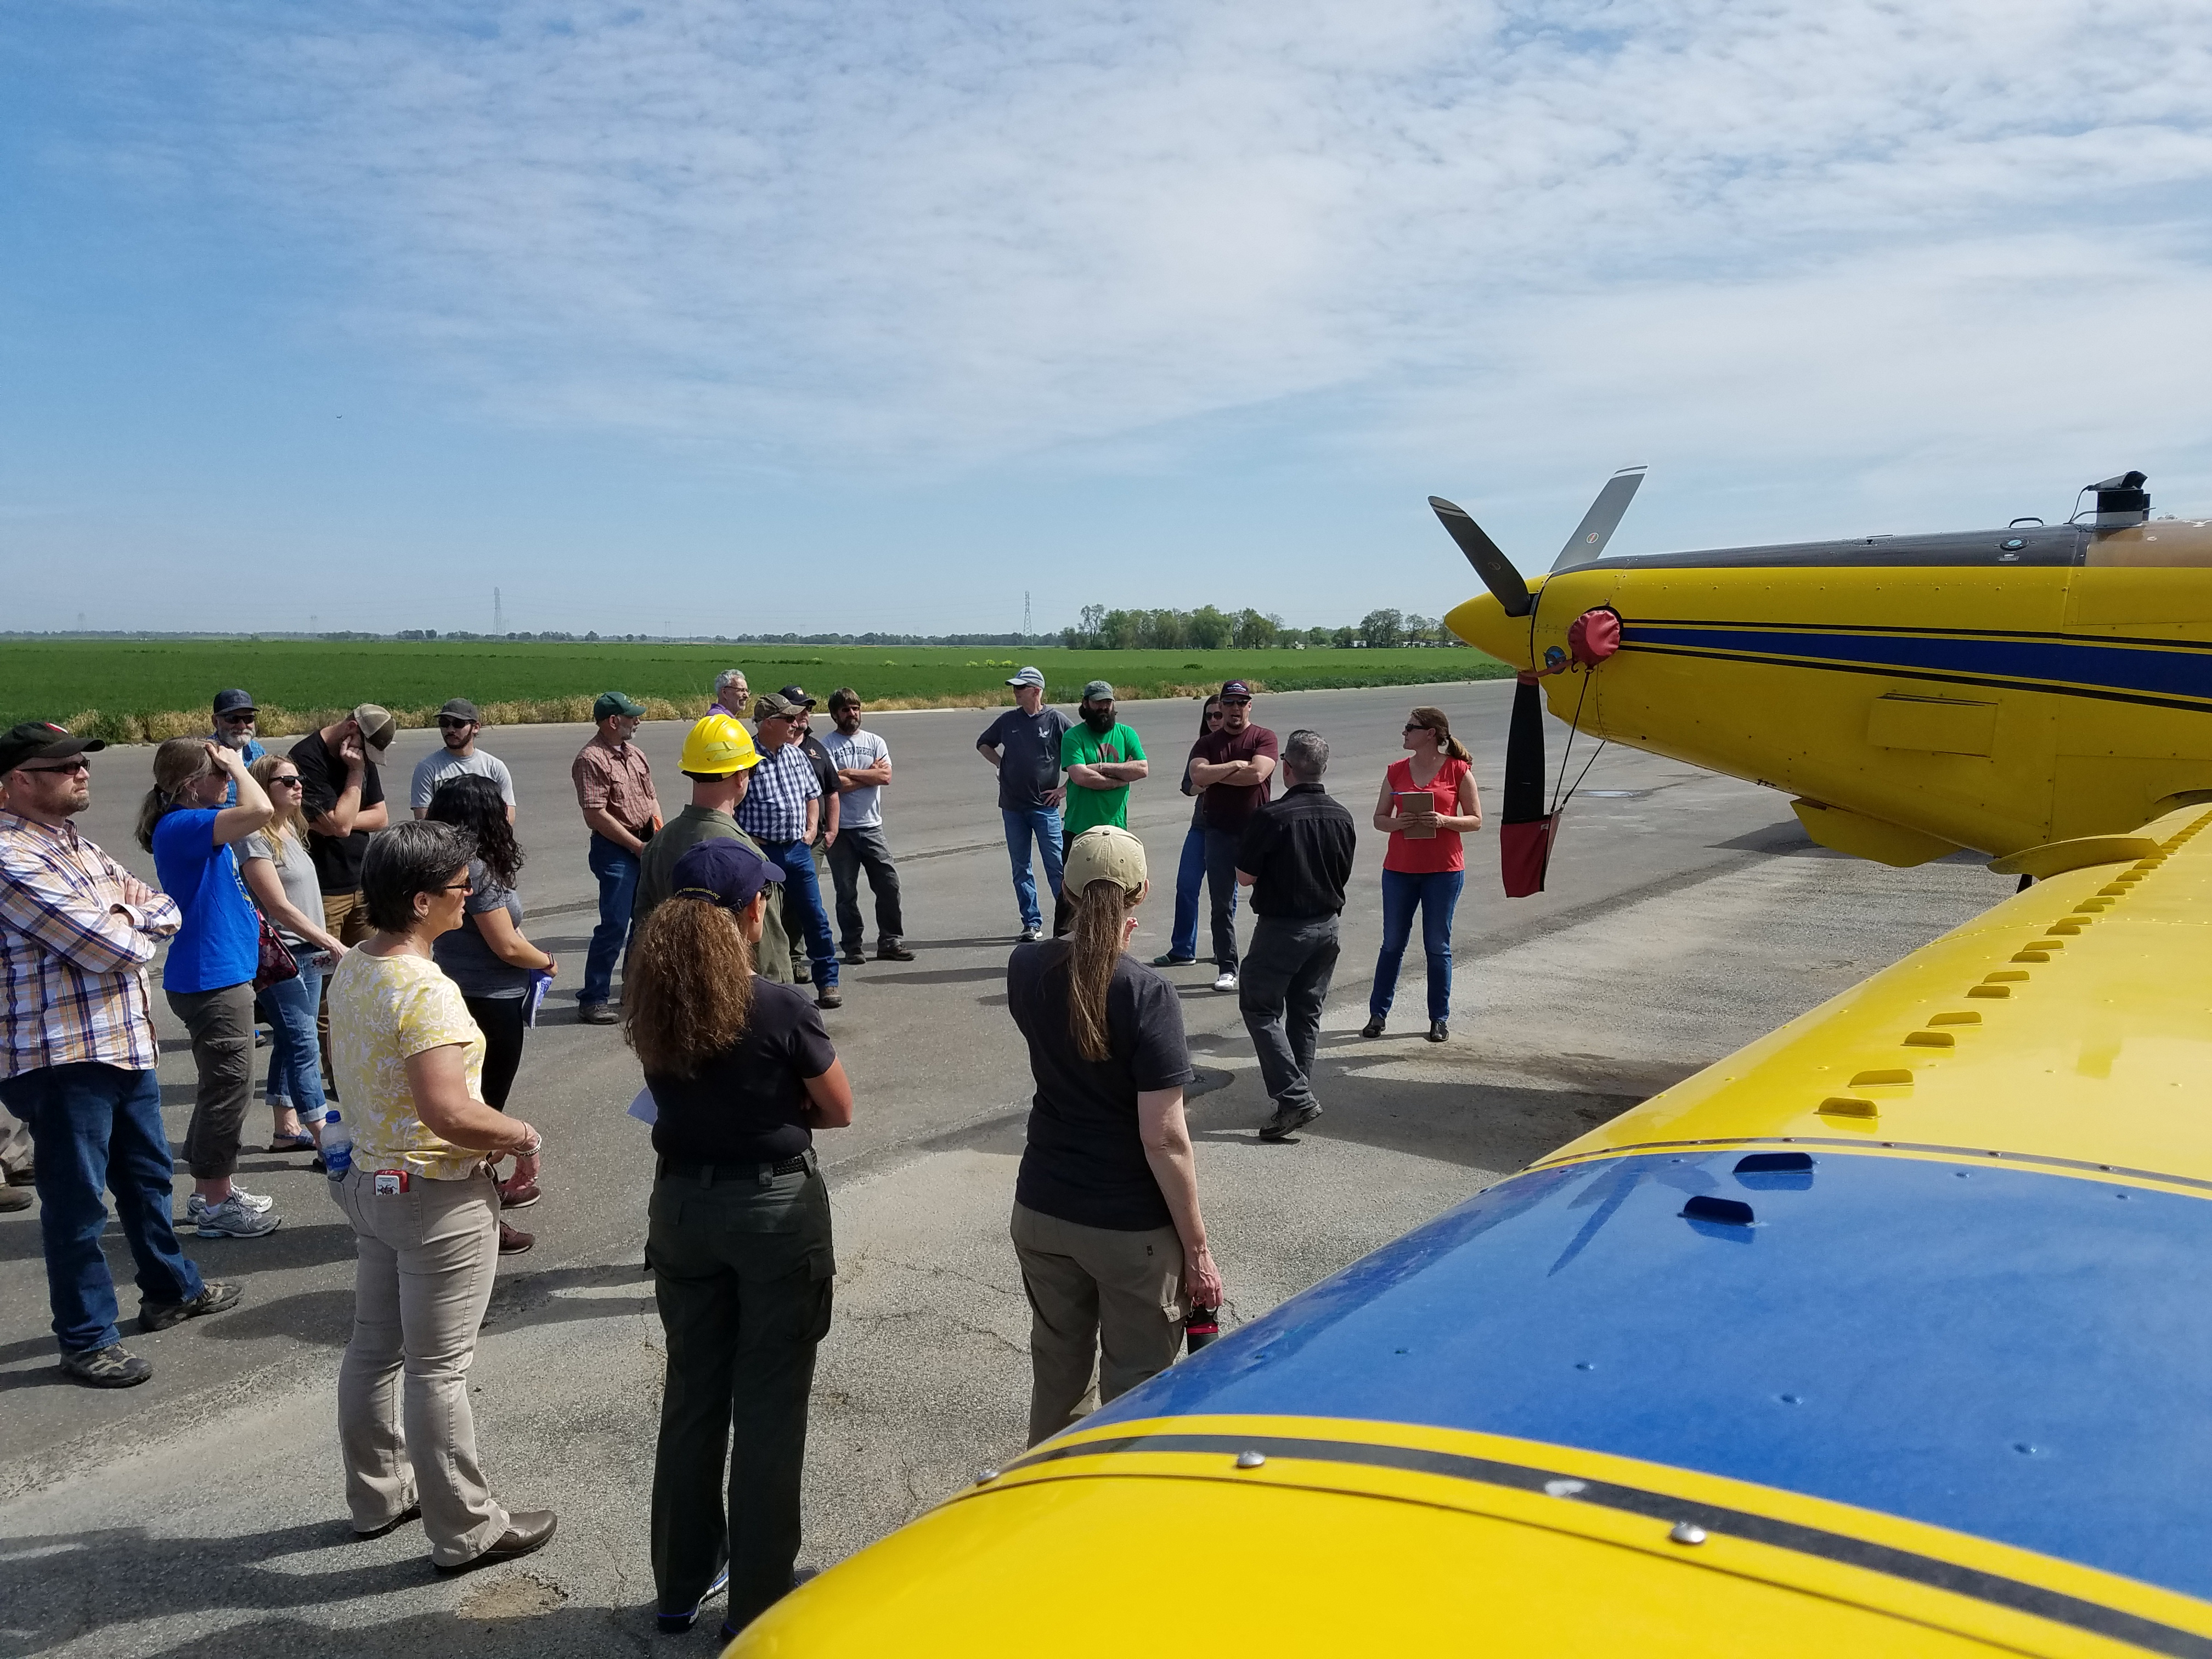 Photo: A group of people standing on tarmac around air tractor listen to Serena discuss air safety.